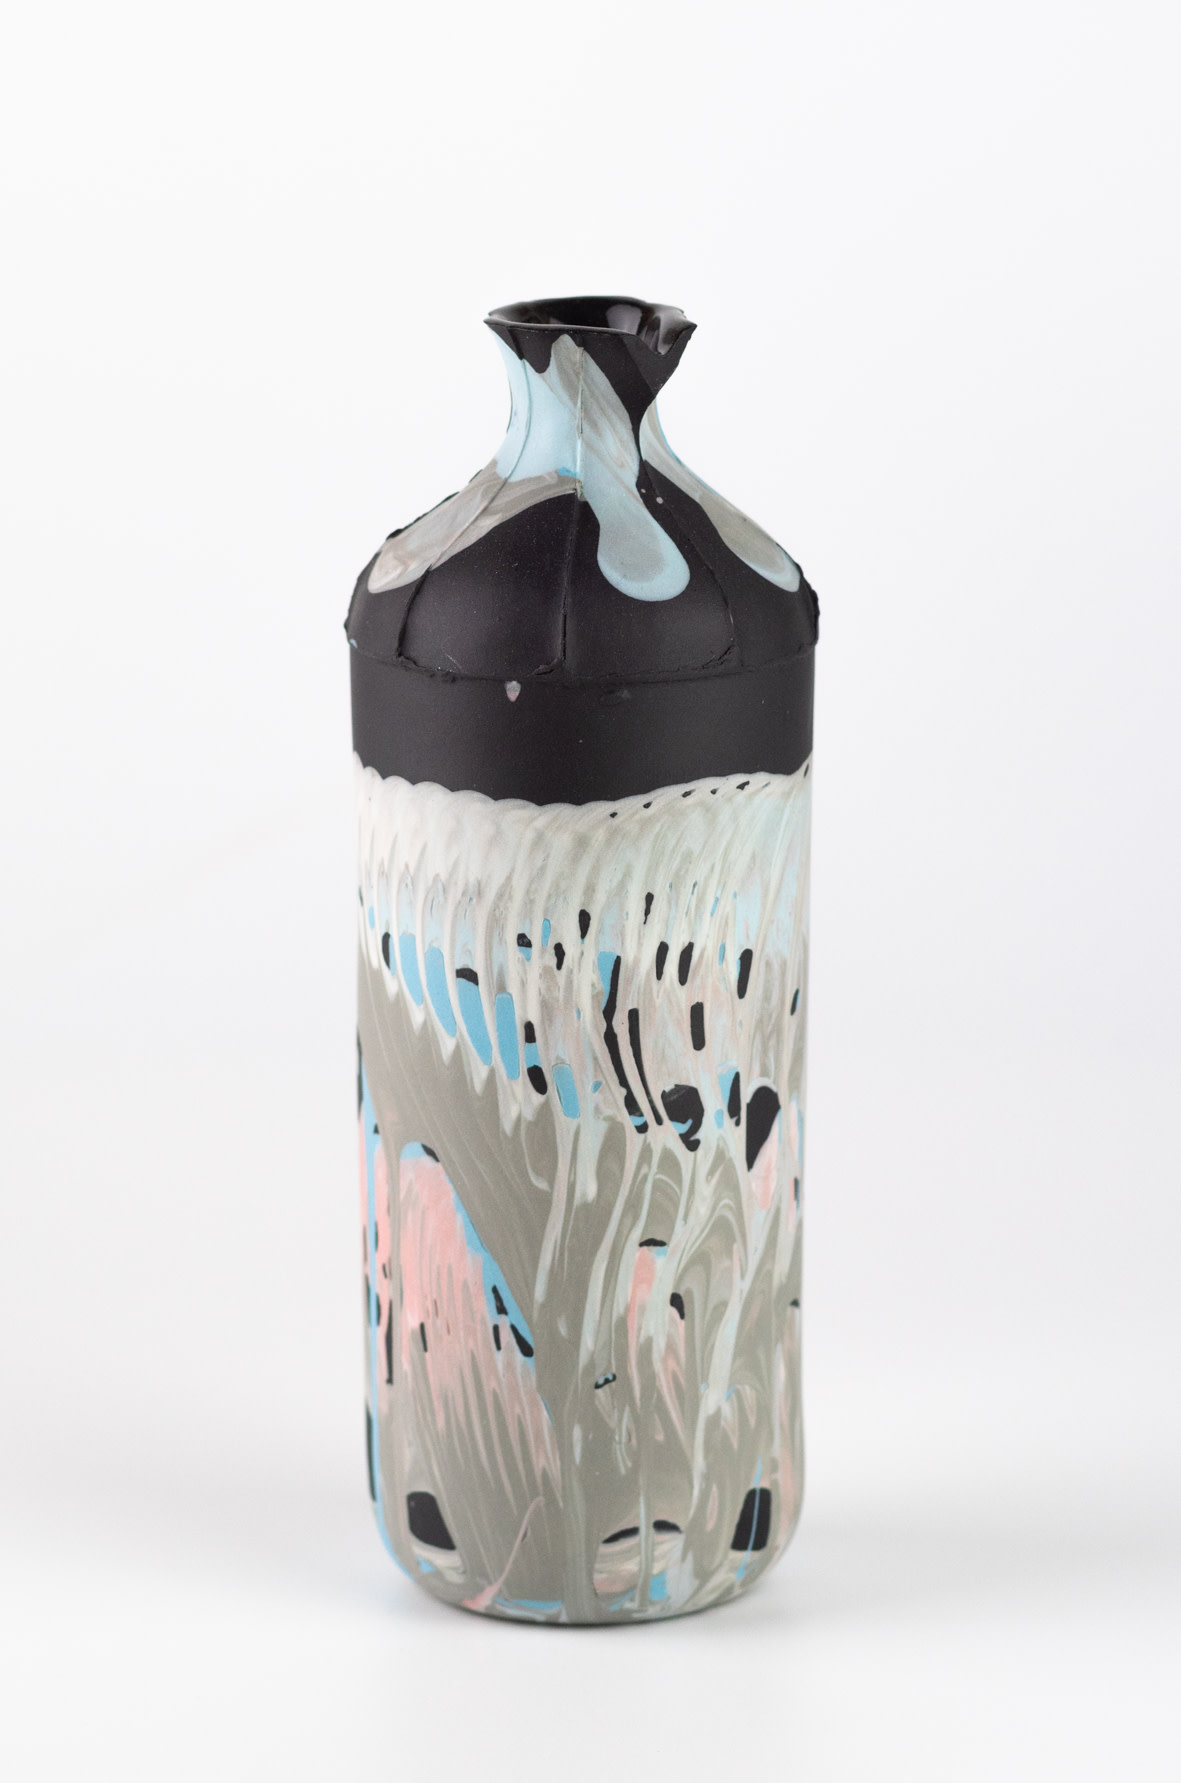 "<span class=""link fancybox-details-link""><a href=""/artists/219-james-pegg/works/6569-james-pegg-tall-bottle-2019/"">View Detail Page</a></span><div class=""artist""><strong>James Pegg</strong></div> <div class=""title""><em>Tall Bottle</em>, 2019</div> <div class=""medium"">action-cast stained porcelain with glazed interior</div> <div class=""dimensions"">h 17cm, dia 6 cm</div><div class=""price"">£120.00</div><div class=""copyright_line"">OwnArt: £ 12 x 10 Months, 0% APR </div>"